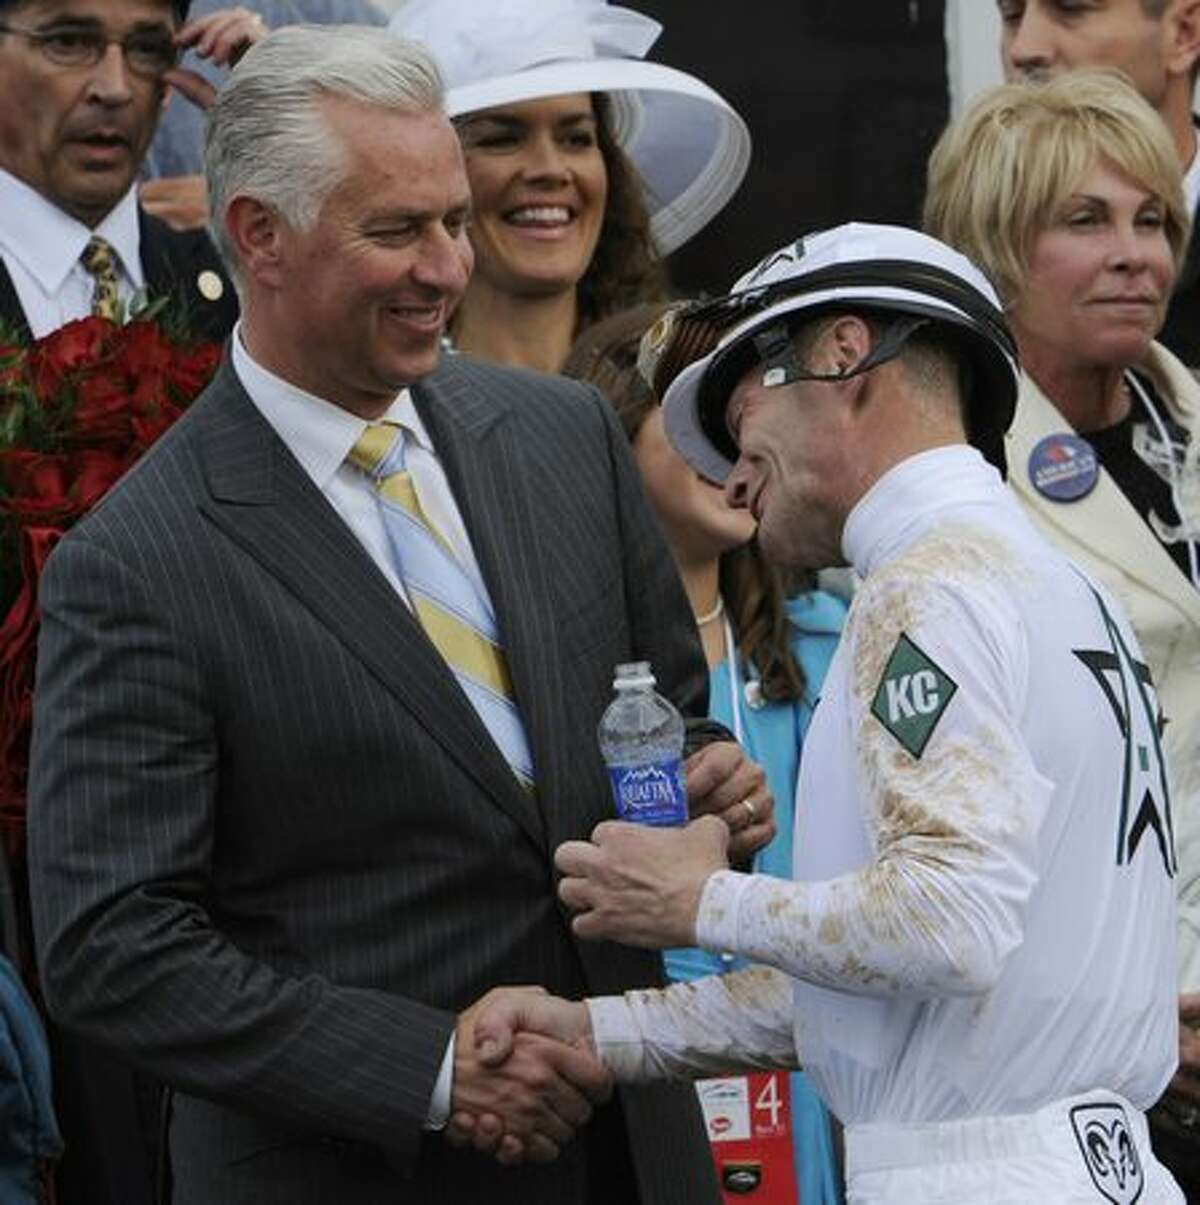 Jockey Calvin Borel is congratulated by Trainer Todd Pletcher after his first win and Borel's third Kentucky Derby win on Super Saver at Churchill Downs in Louisville, Kentucky May 1, 2010. (Skip Dickstein / Times Union)